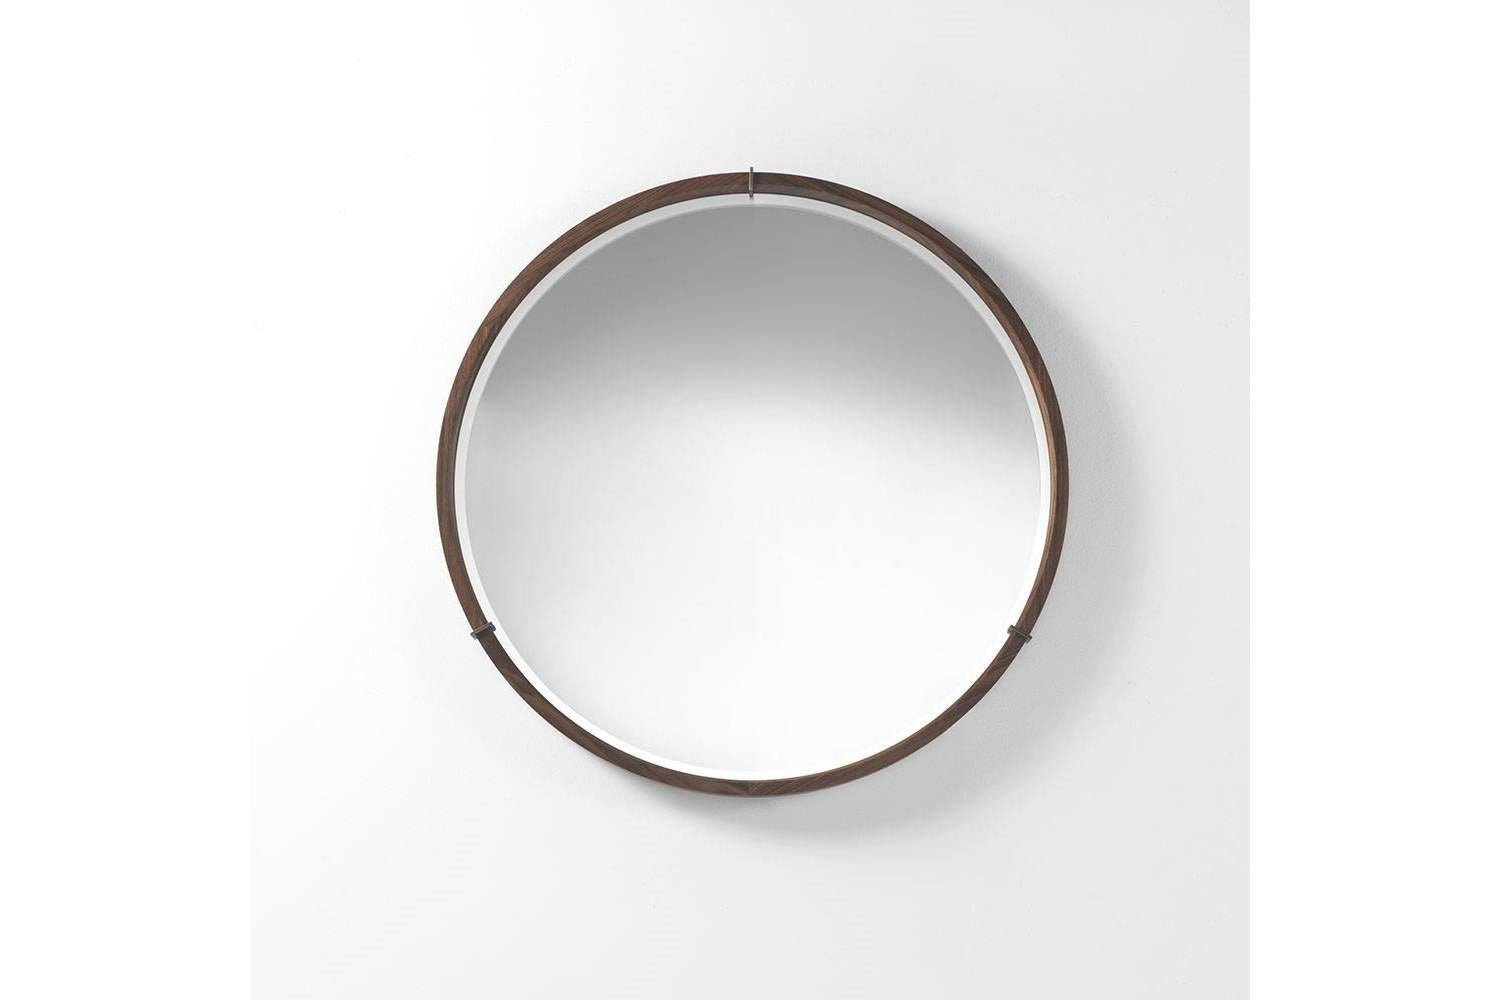 Levante Mirror by E. Garbin - M. Dell'Orto for Porada